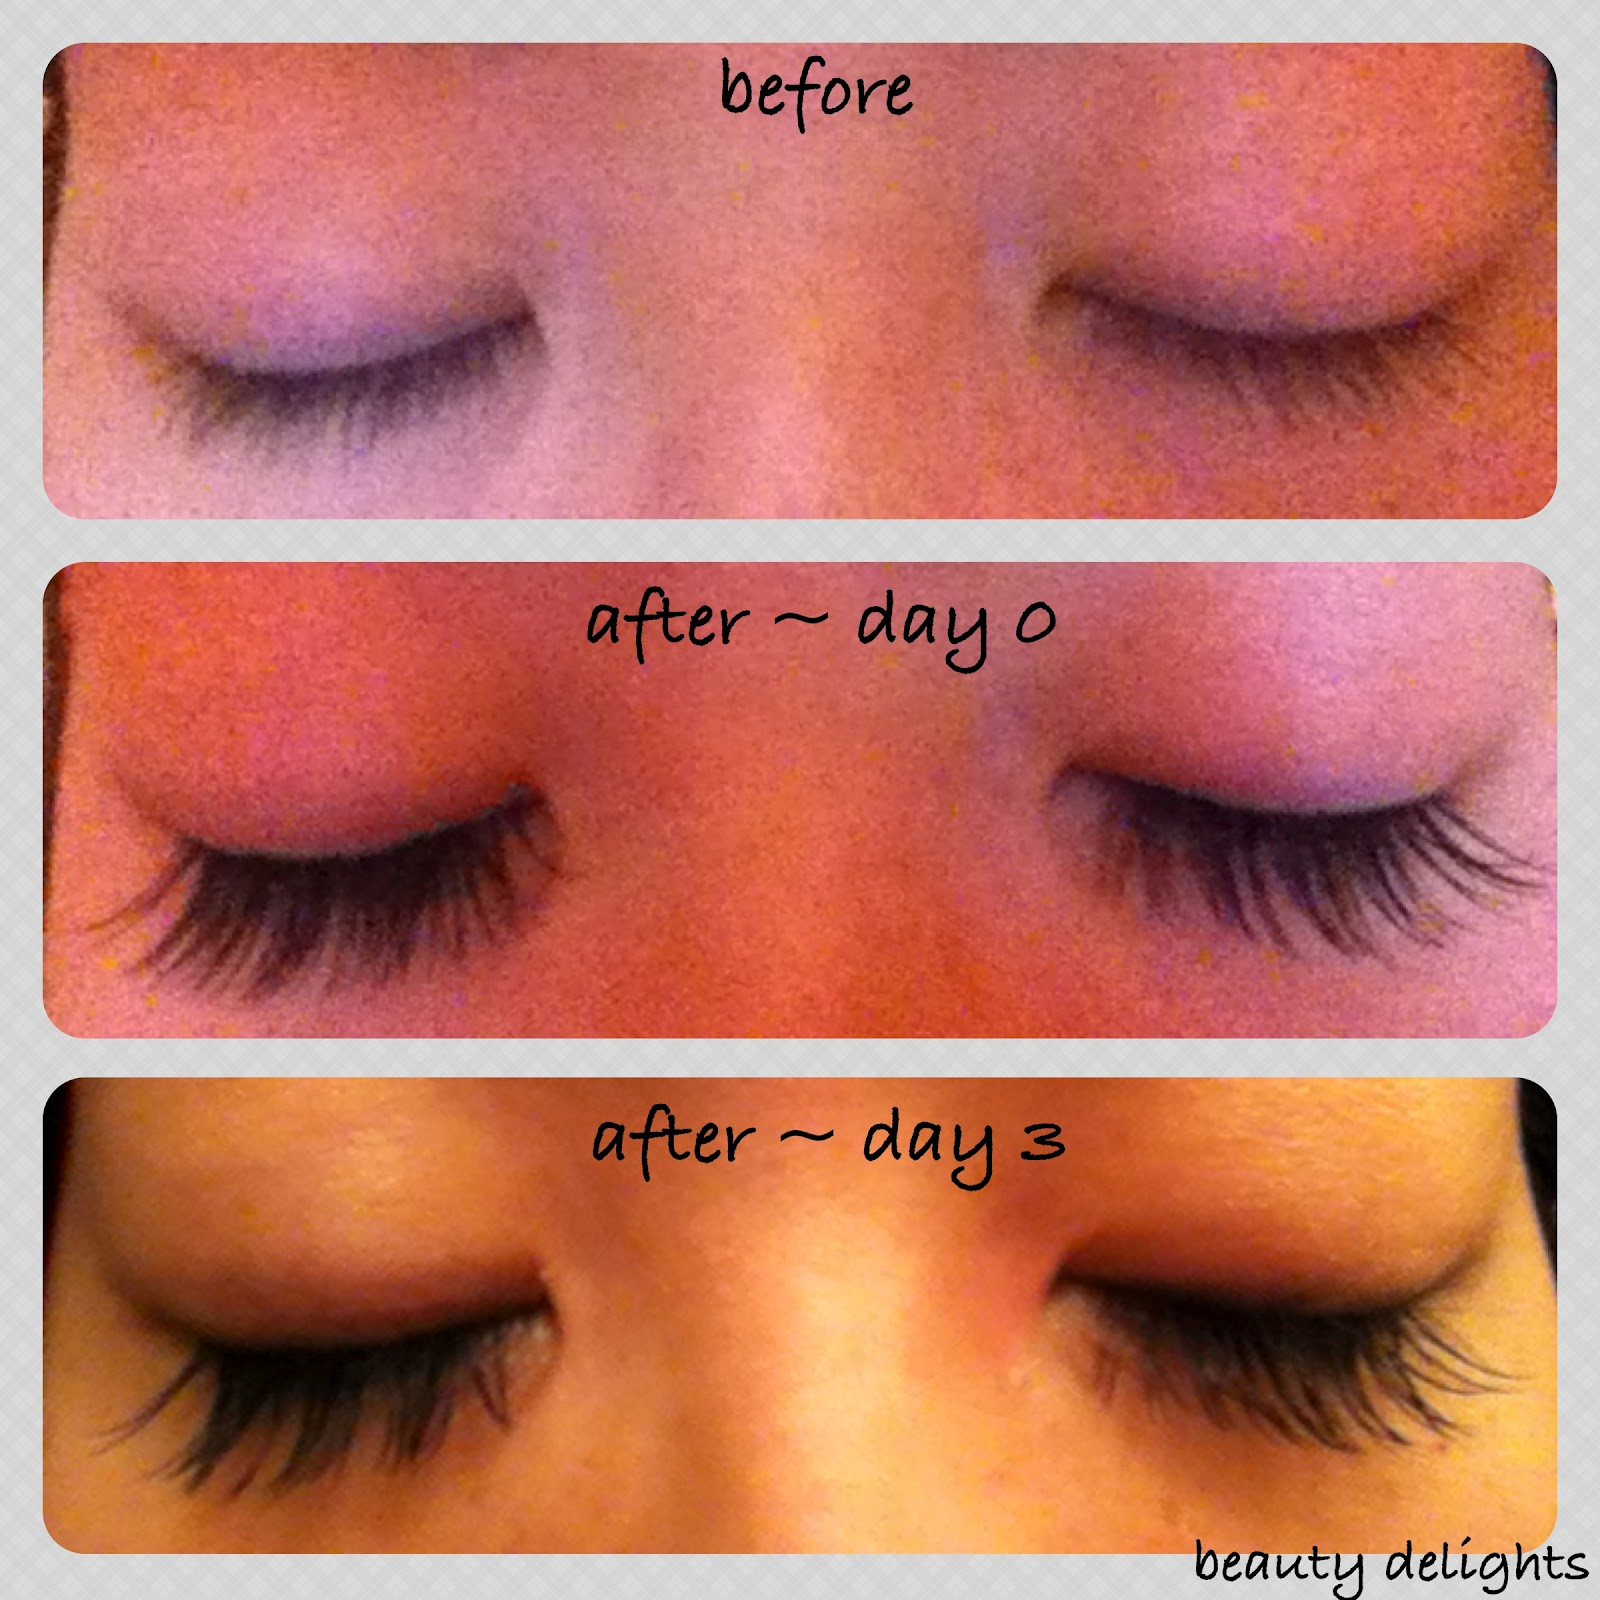 beauty delights: REVIEW: Mink Eyelash Extensions - Week 1